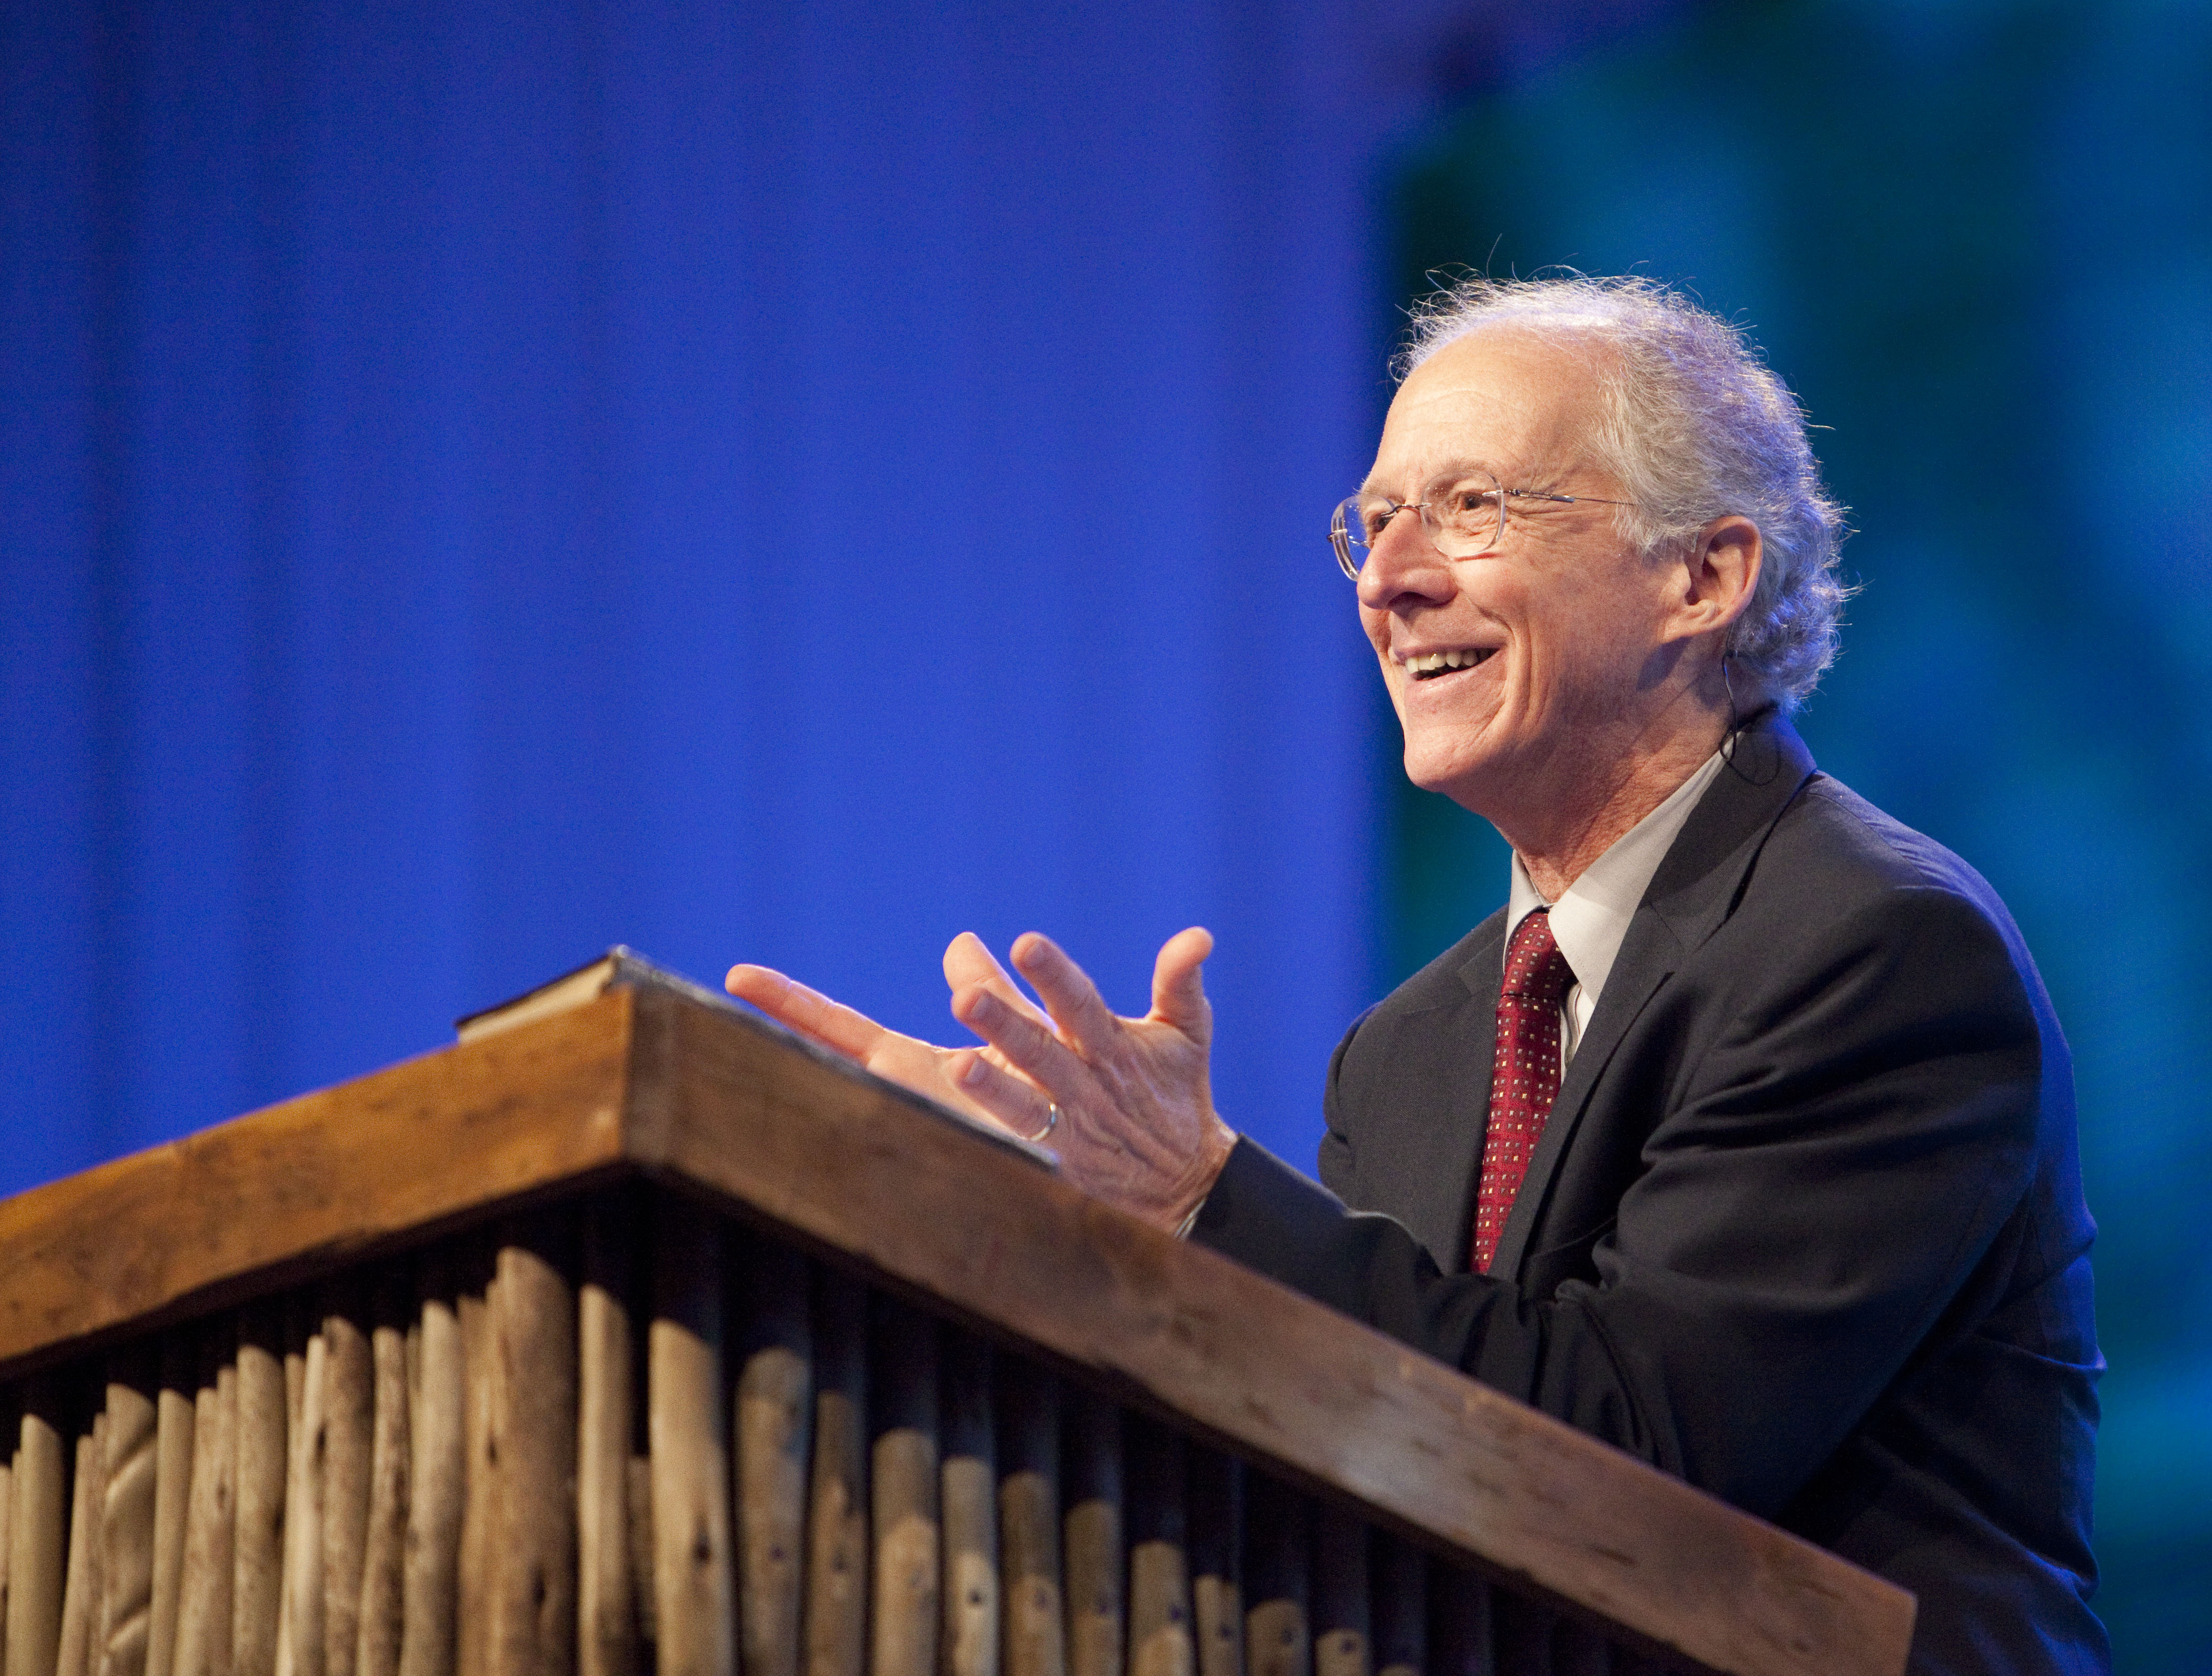 John Piper Urges Christians to Resist Right-Wing Pressure and 'Get Vaccinated'